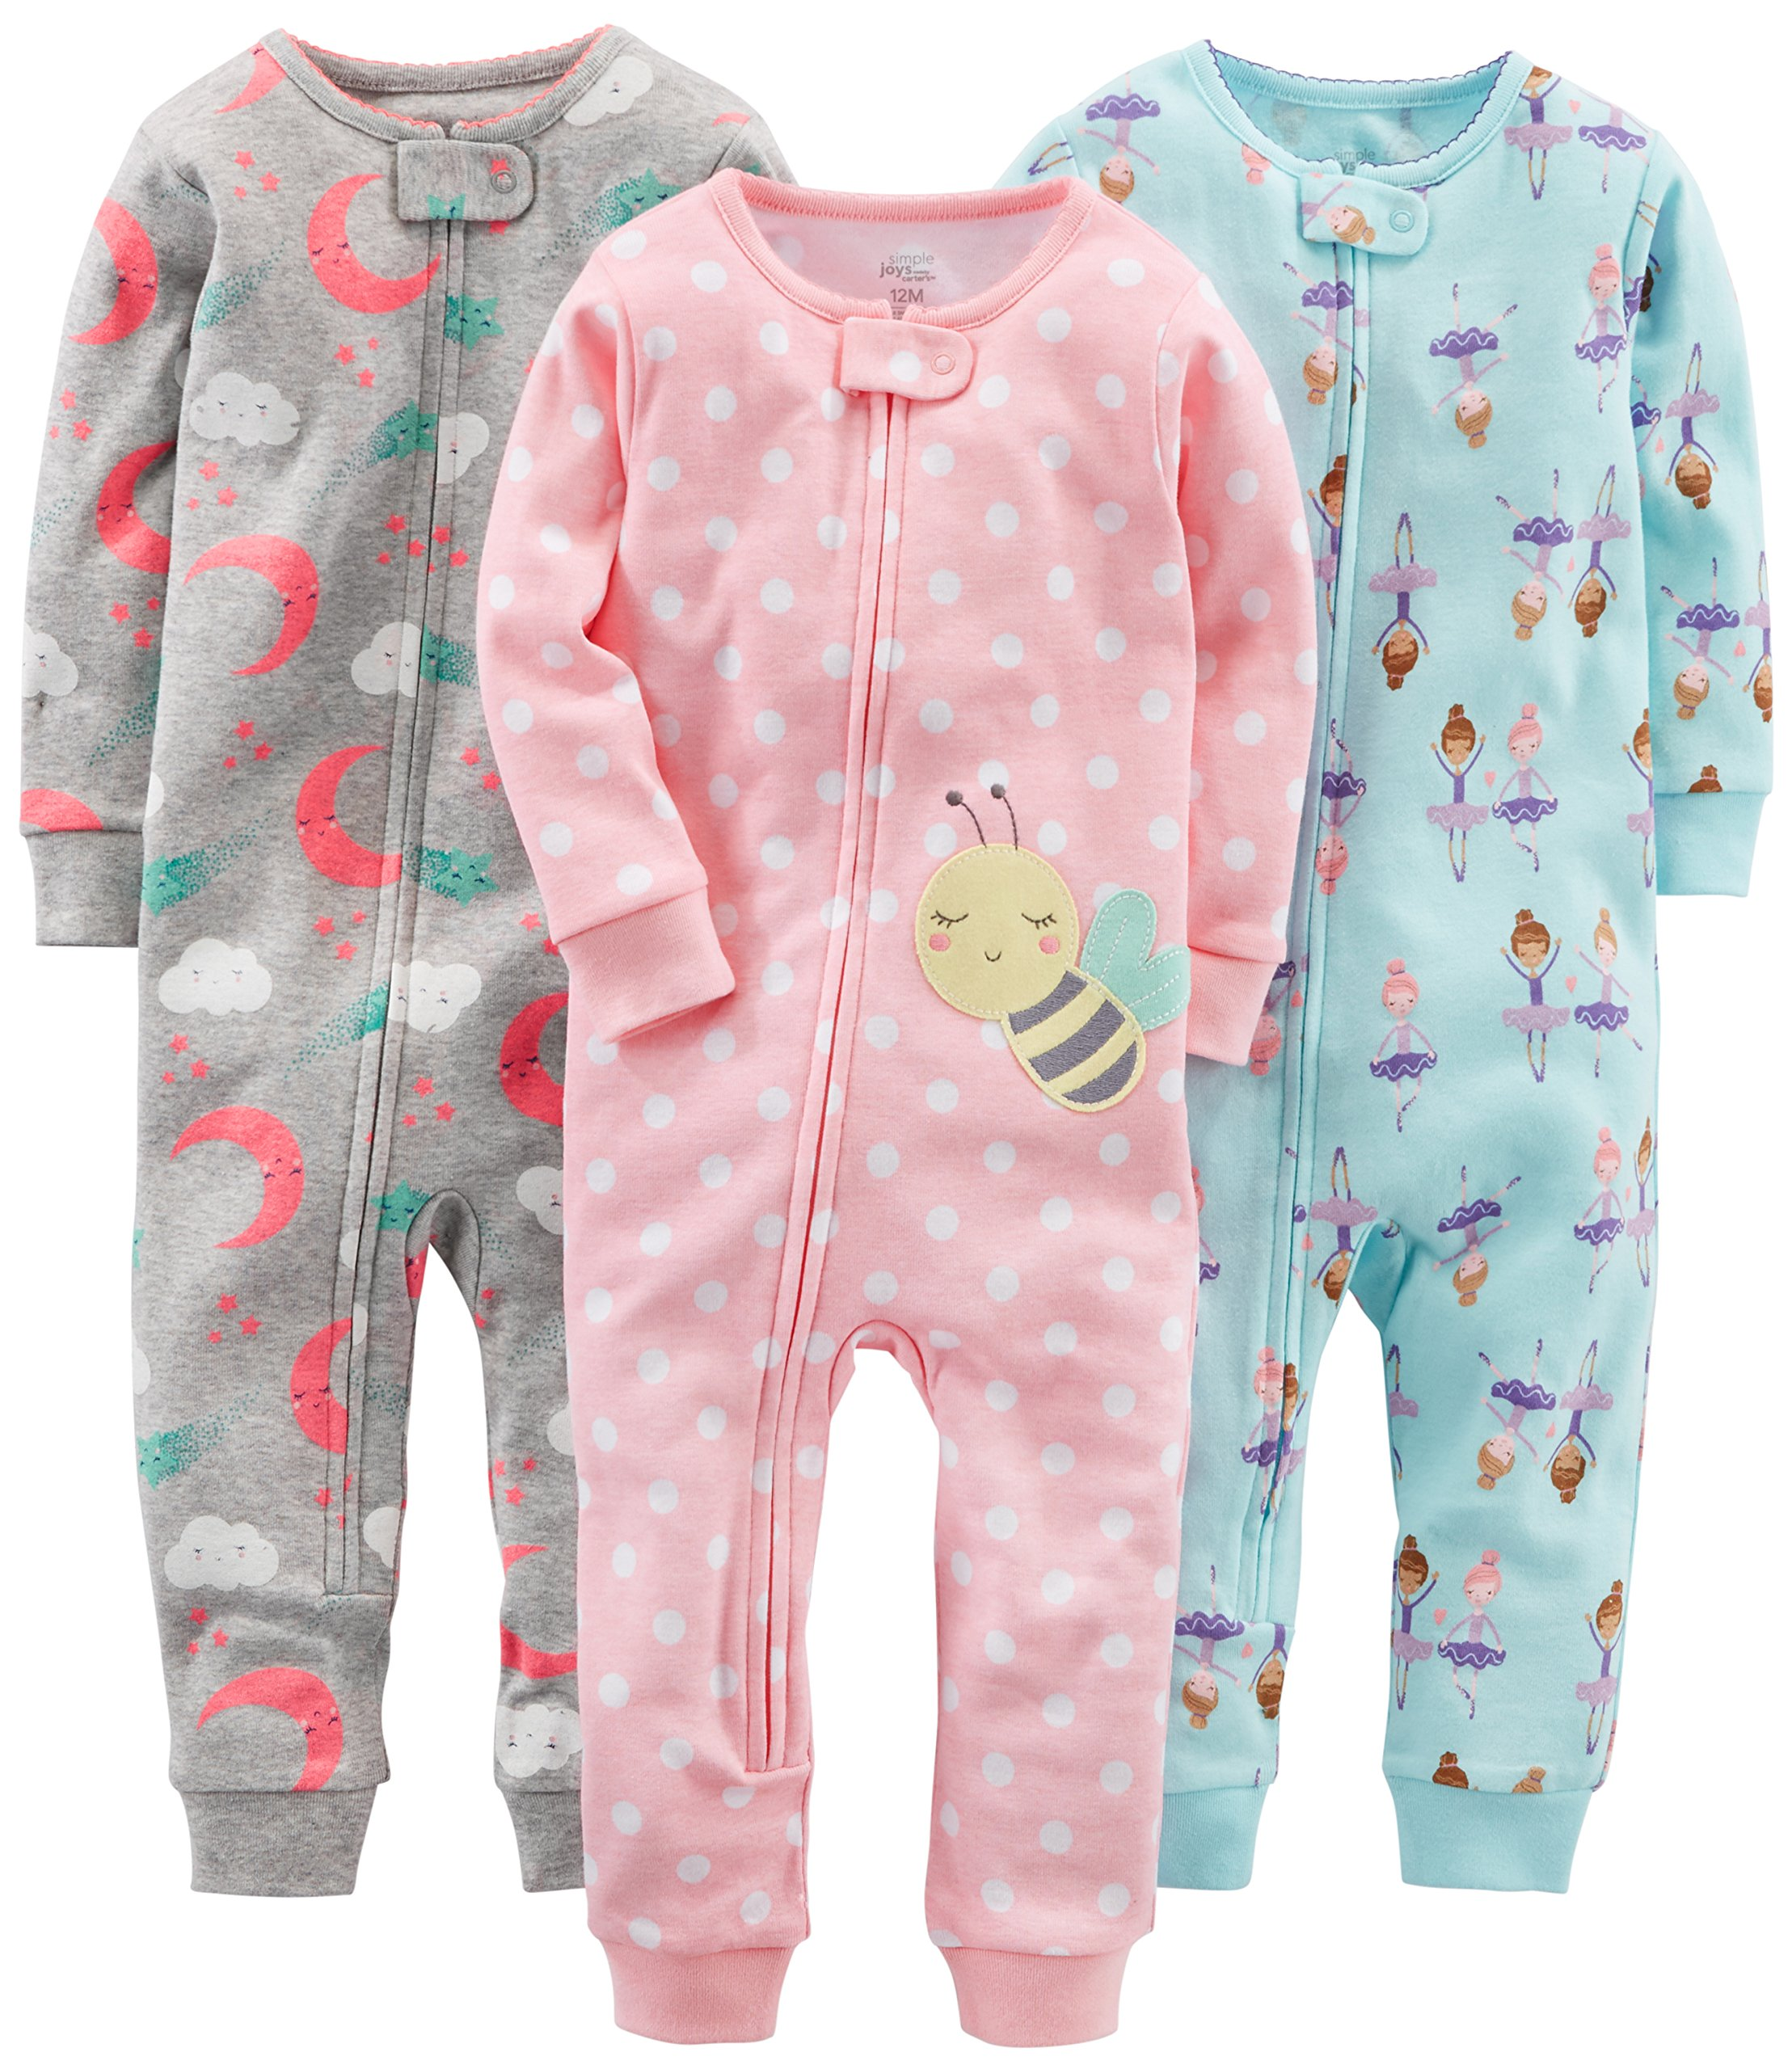 Simple Joys by Carter's Baby Girls' Toddler 3-Pack Snug Fit Footless Cotton Pajamas, Ballerina/Moon/Bee, 2T